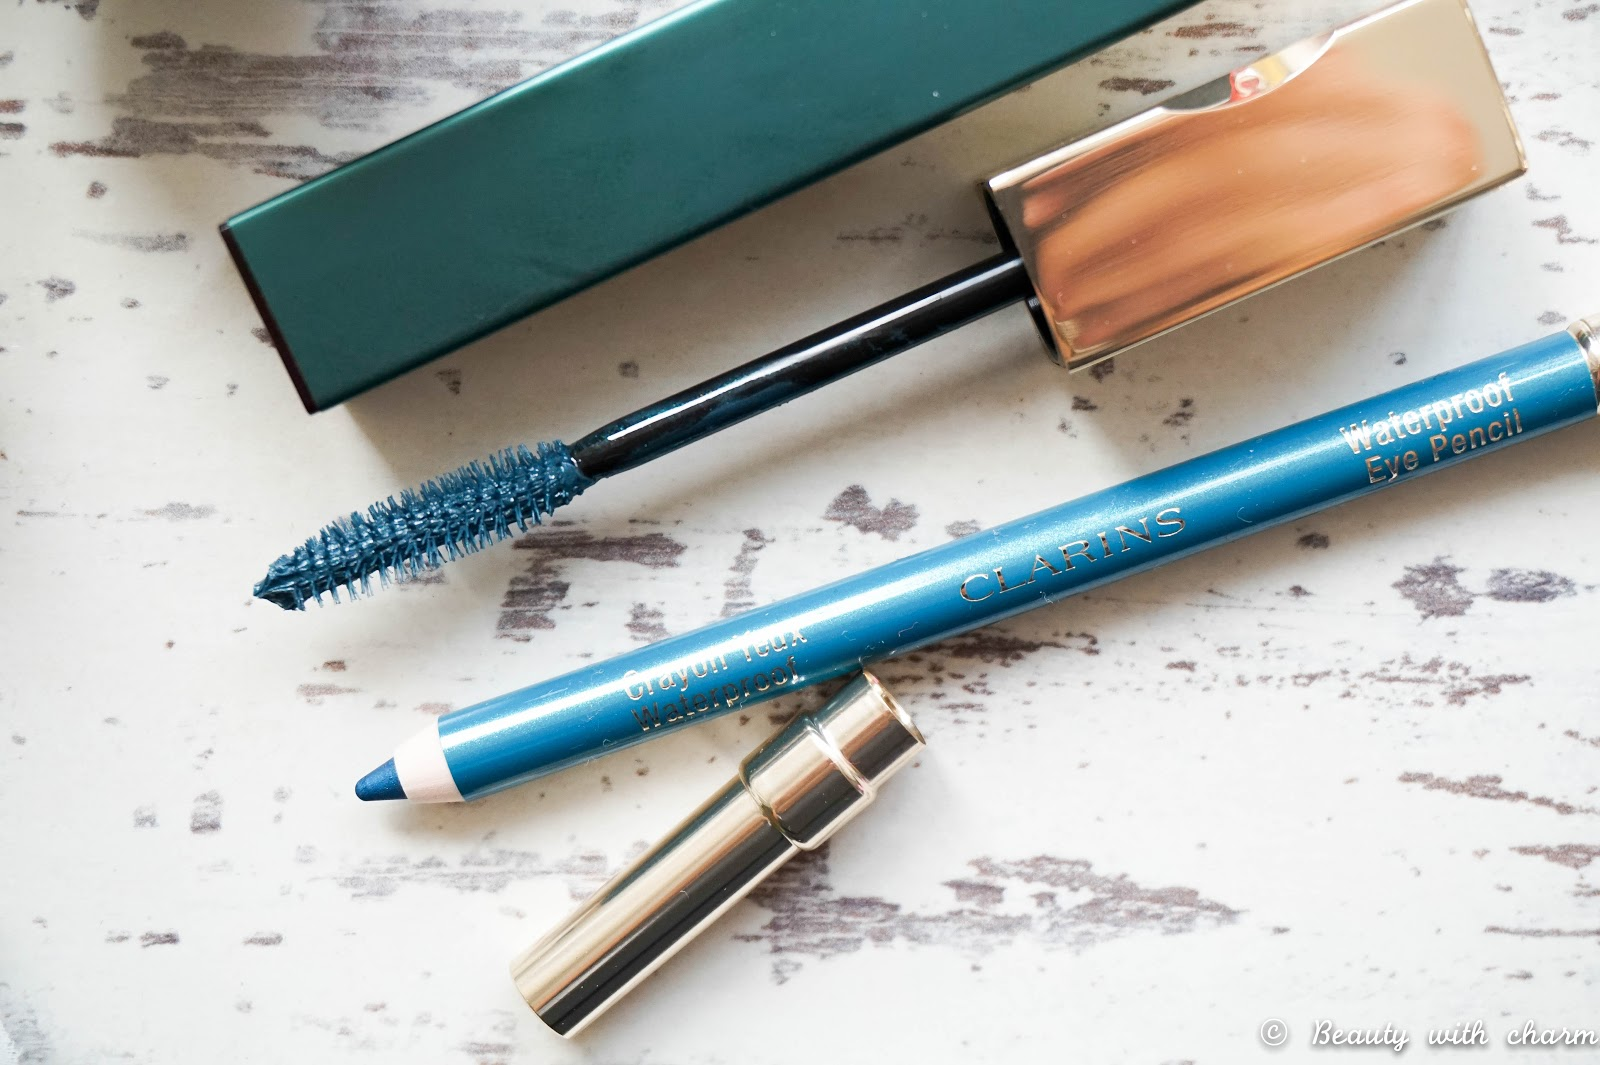 Clarins Aquatic Treasures Summer Collection, Clarins Truly Waterproof Mascara, Clarins Waterproof Eyeliner